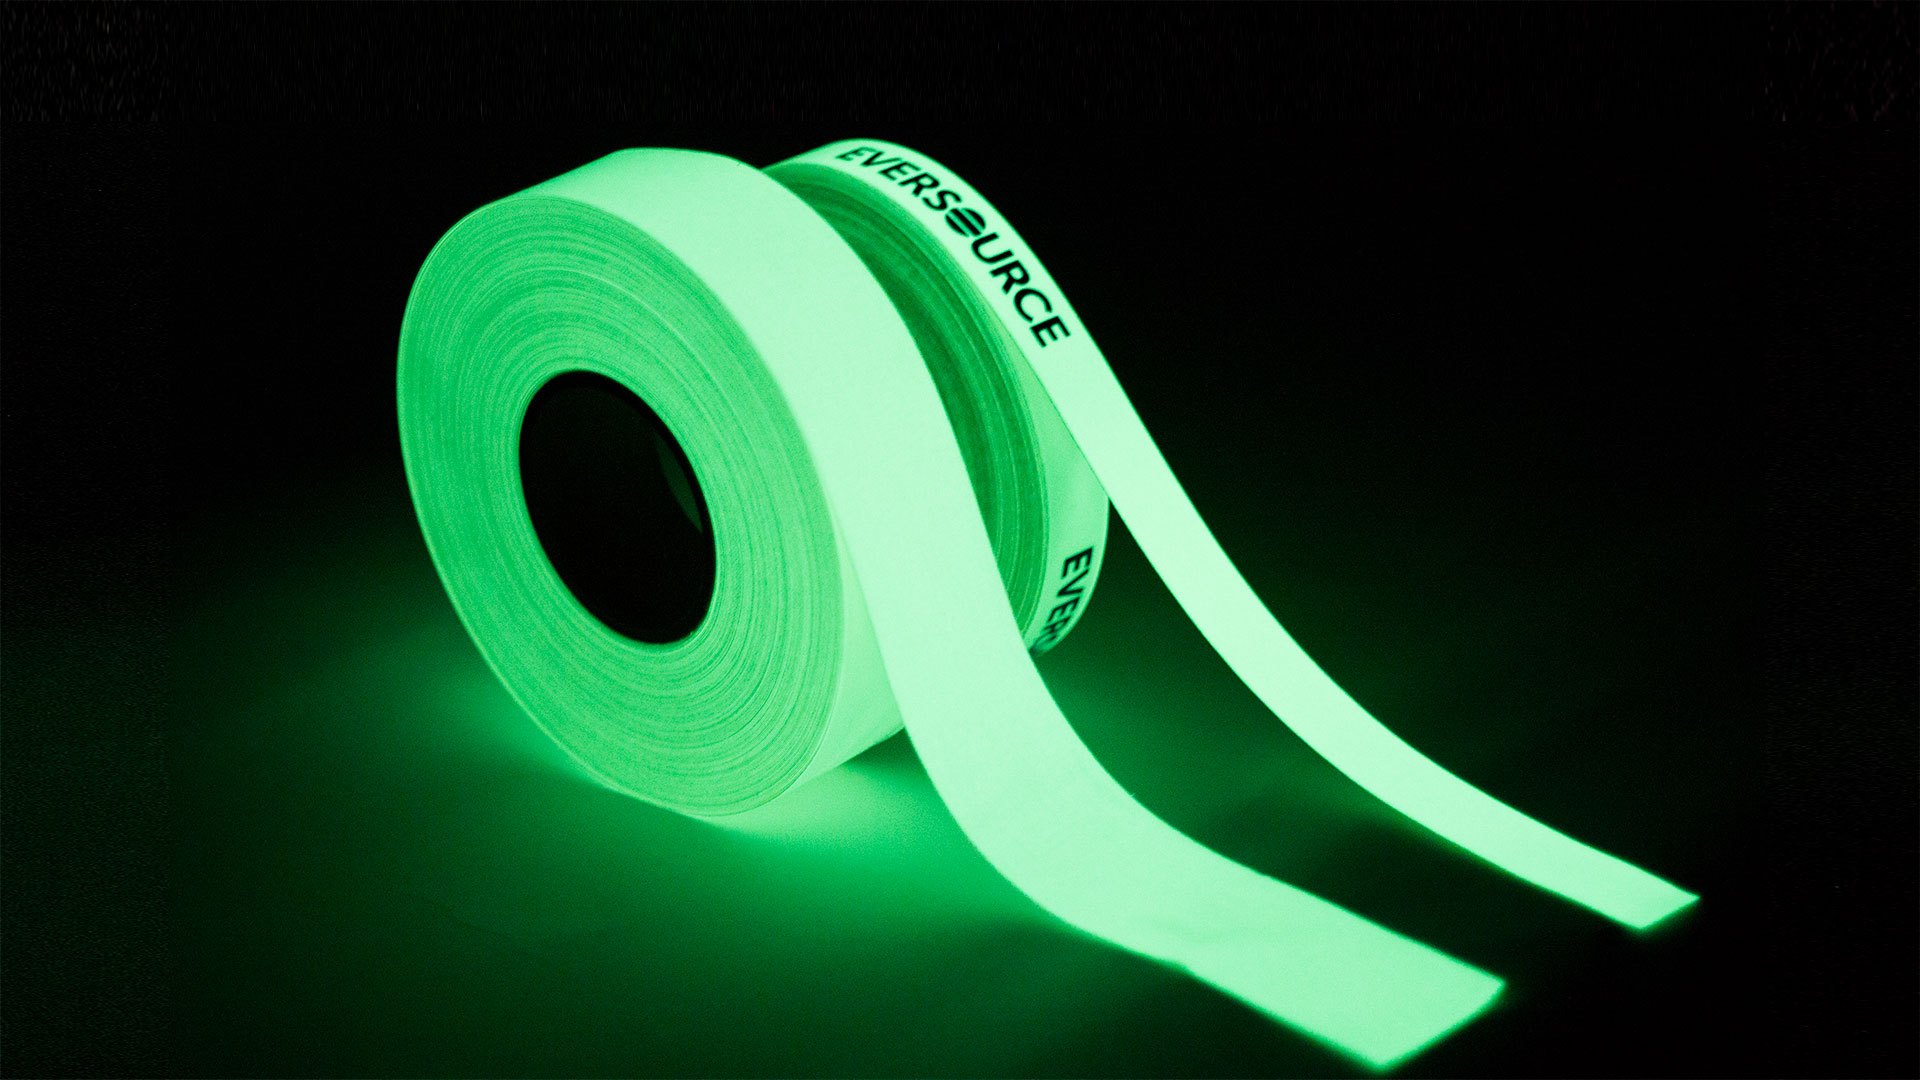 Tape the Glows